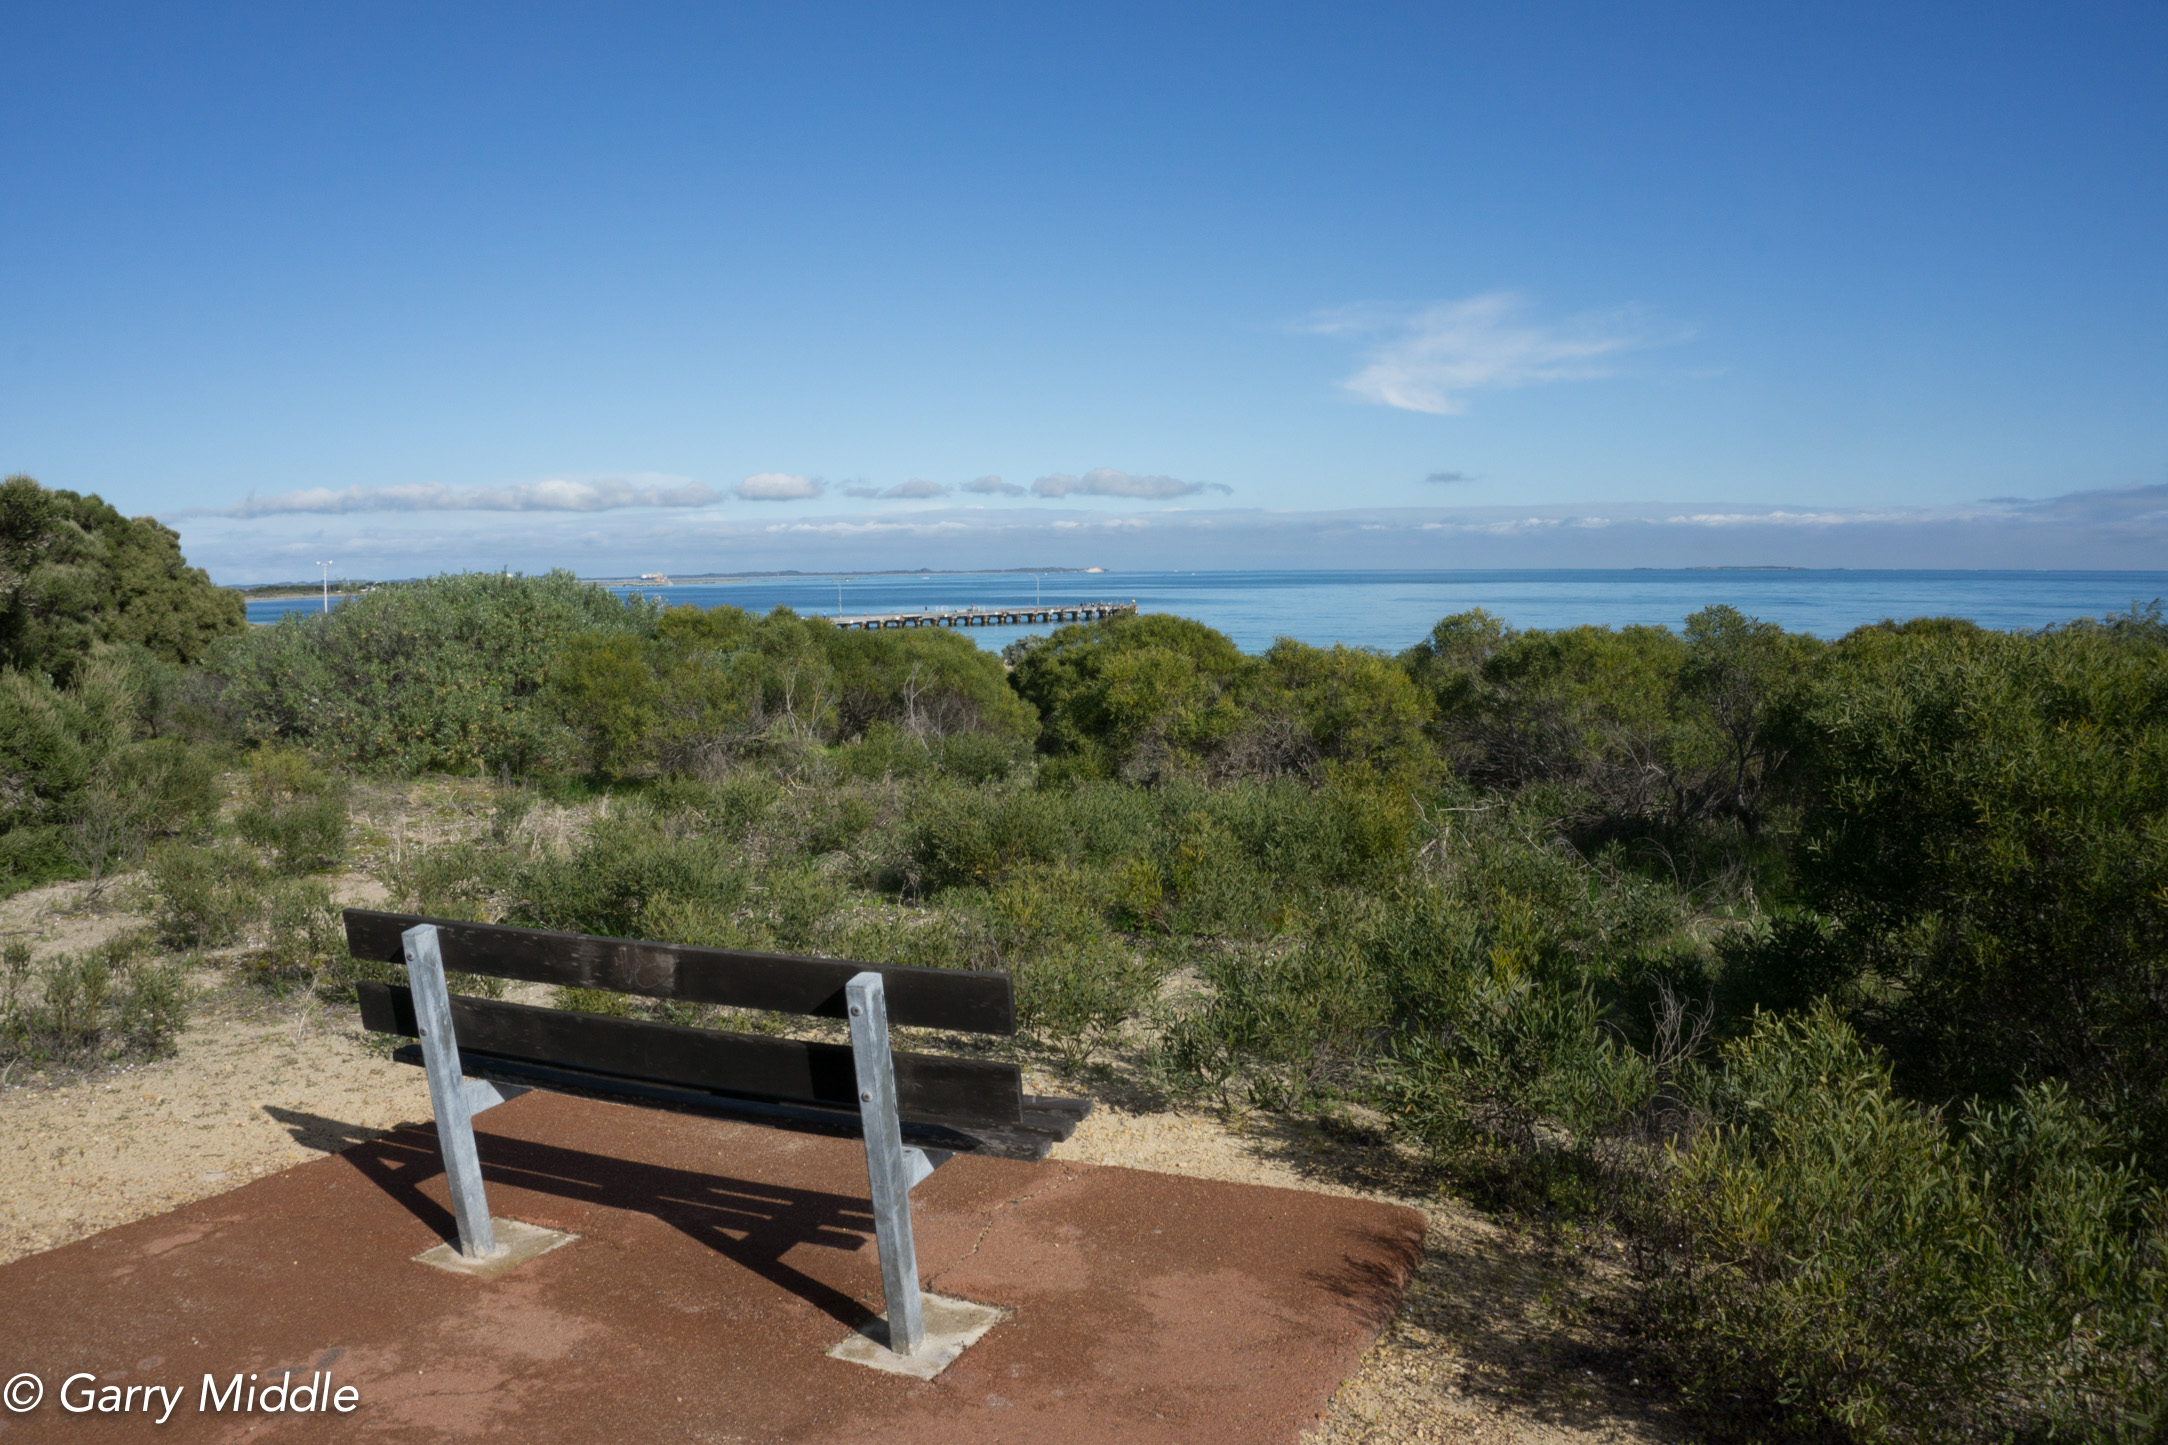 Plate 13: One of the seats near John Graham Reserve with ocean views